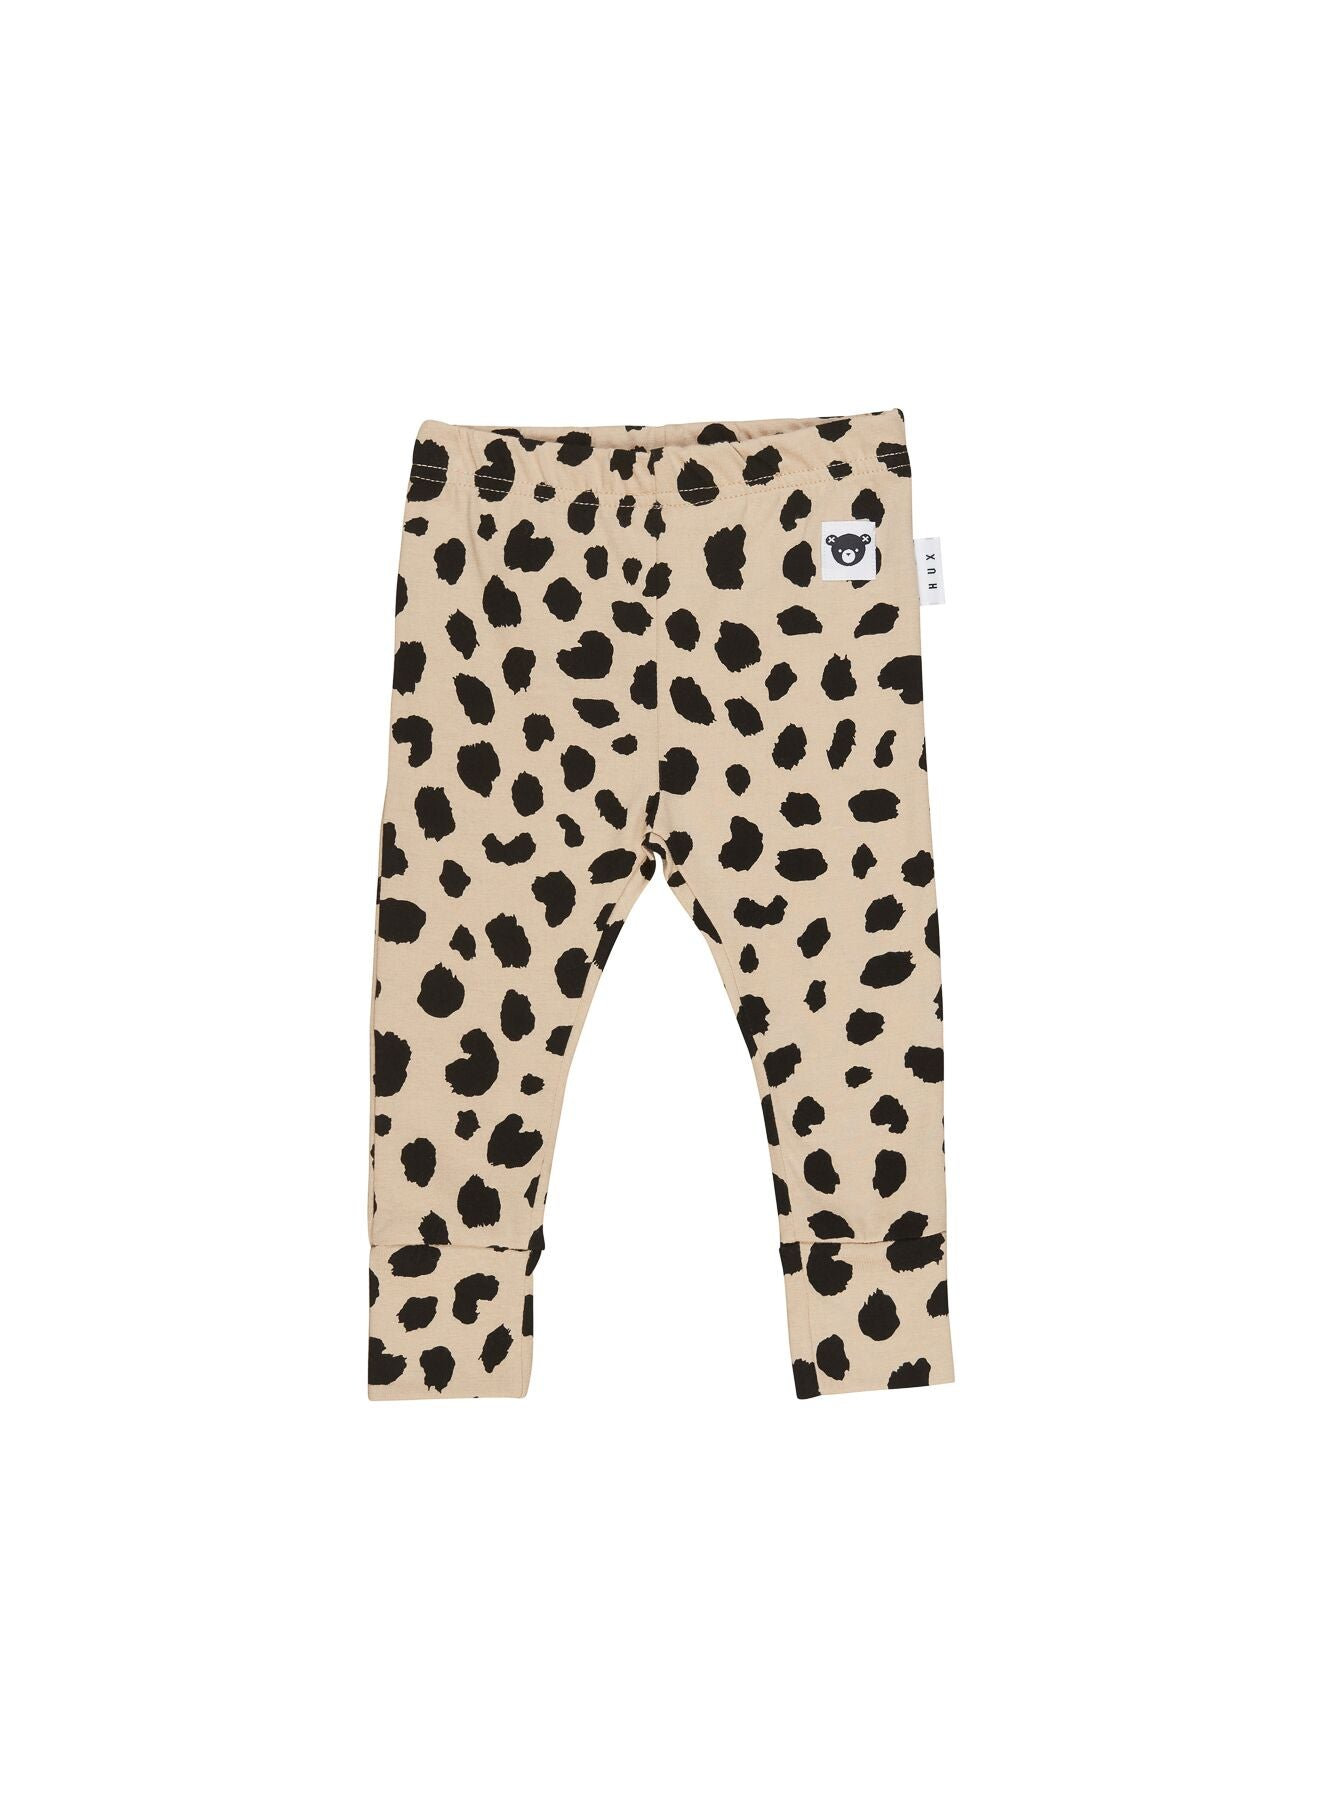 Huxbaby Animal Print Leggings